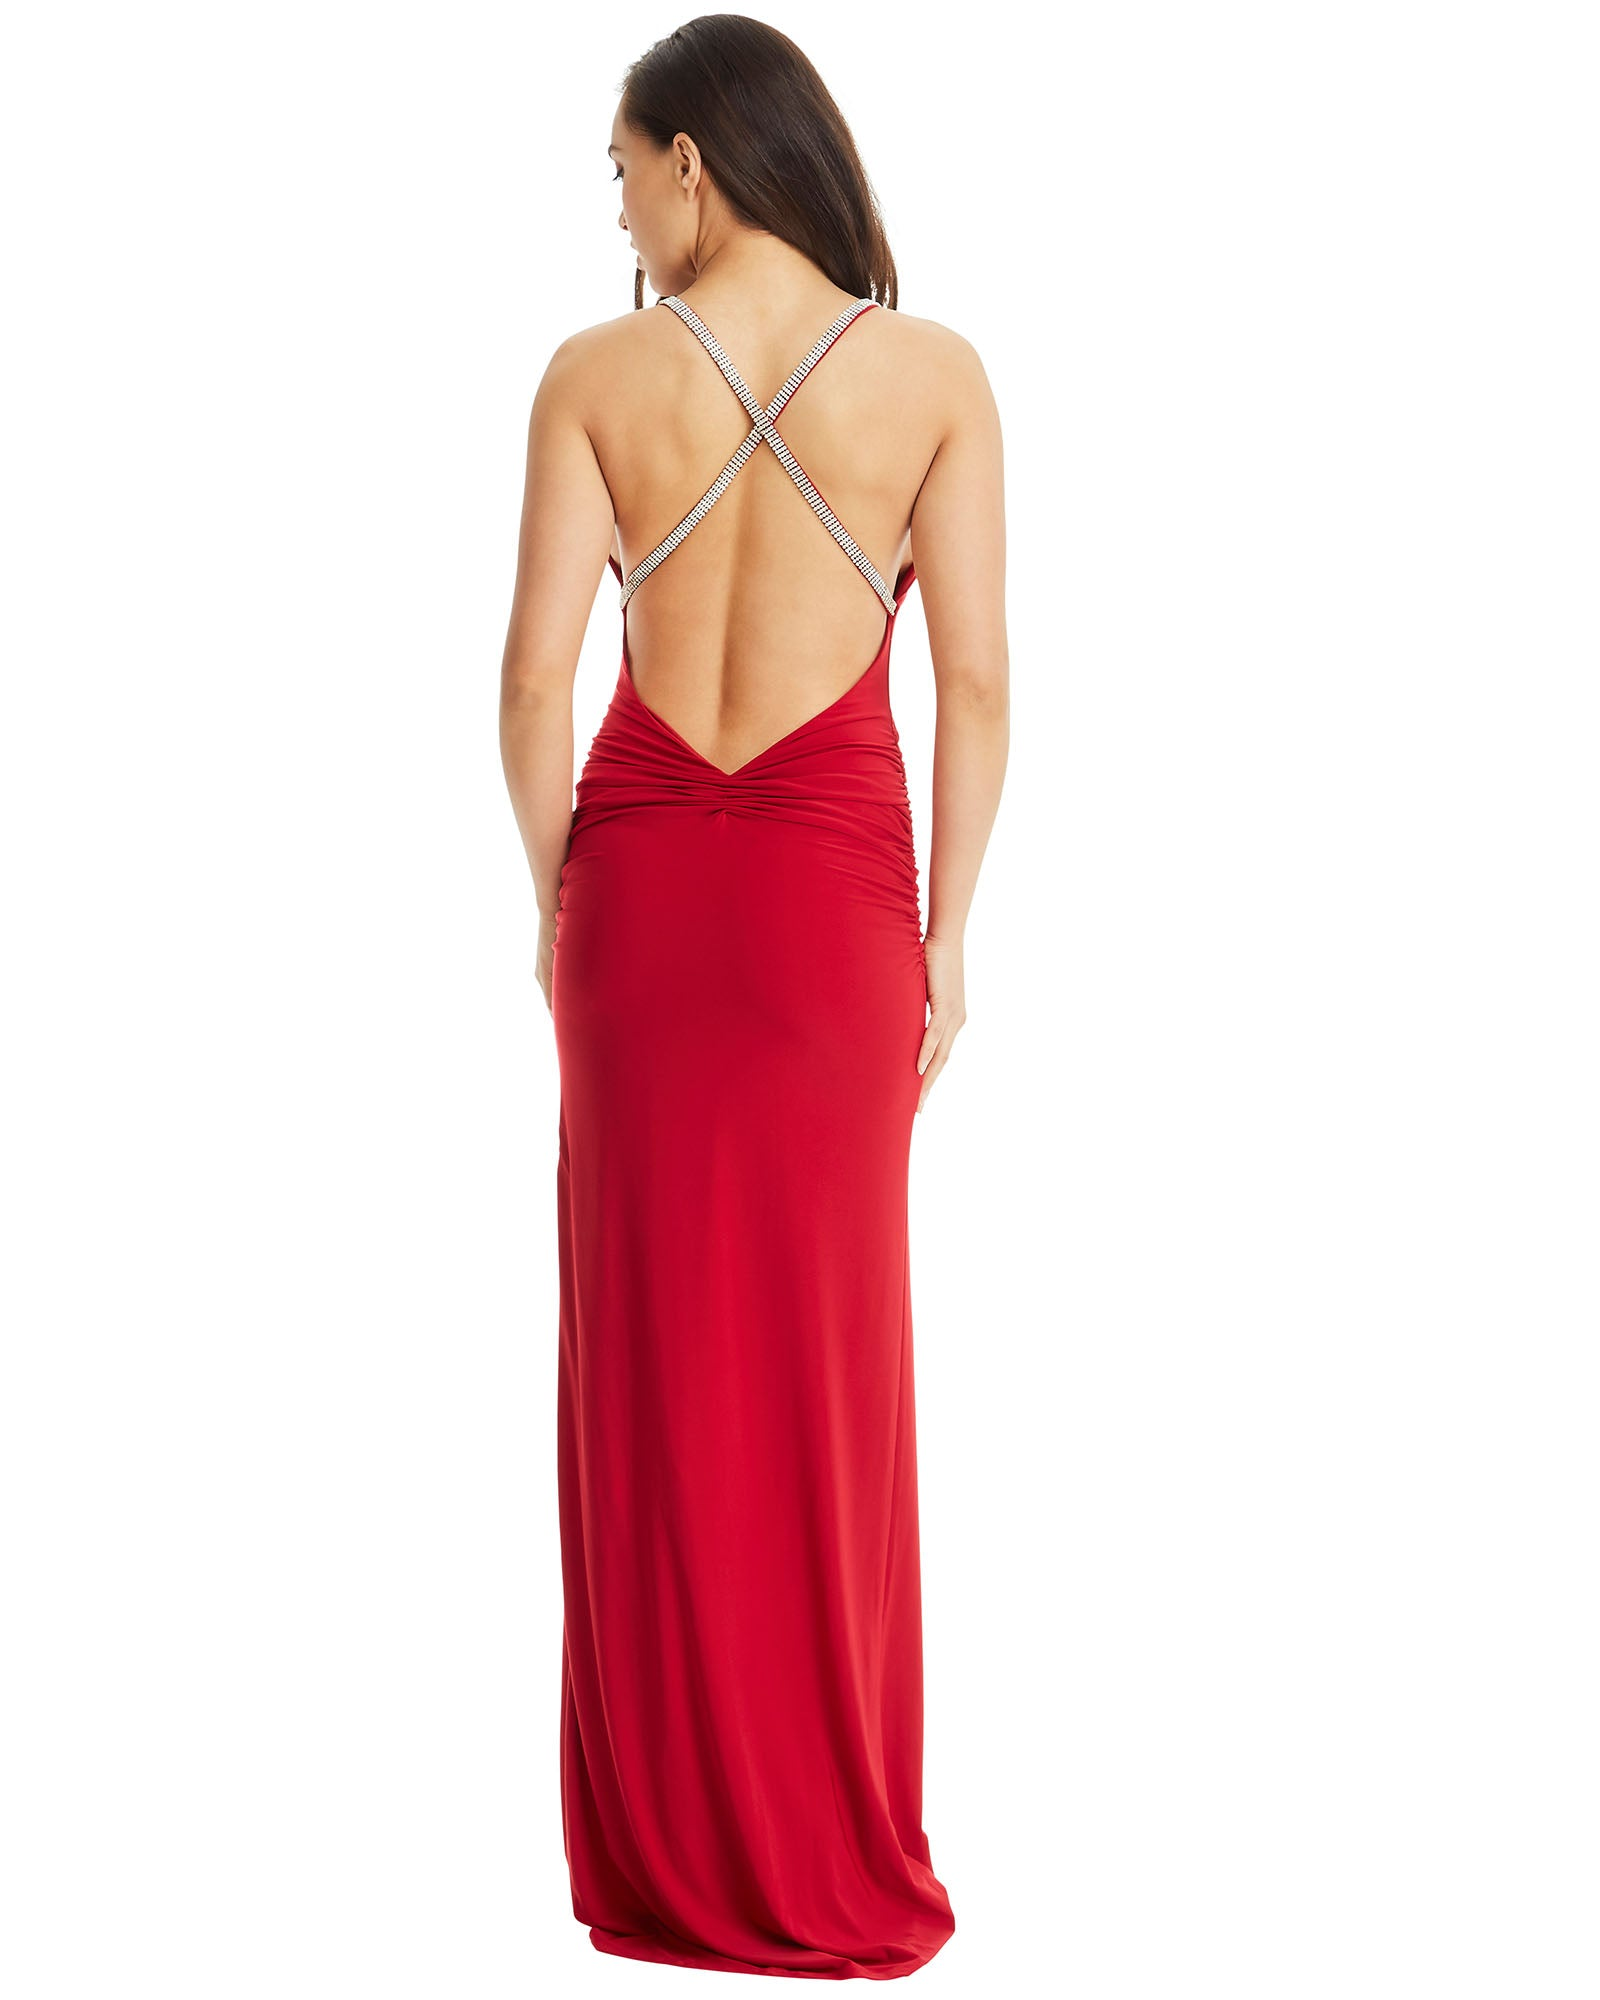 Cross Strap Evening Dress - Red